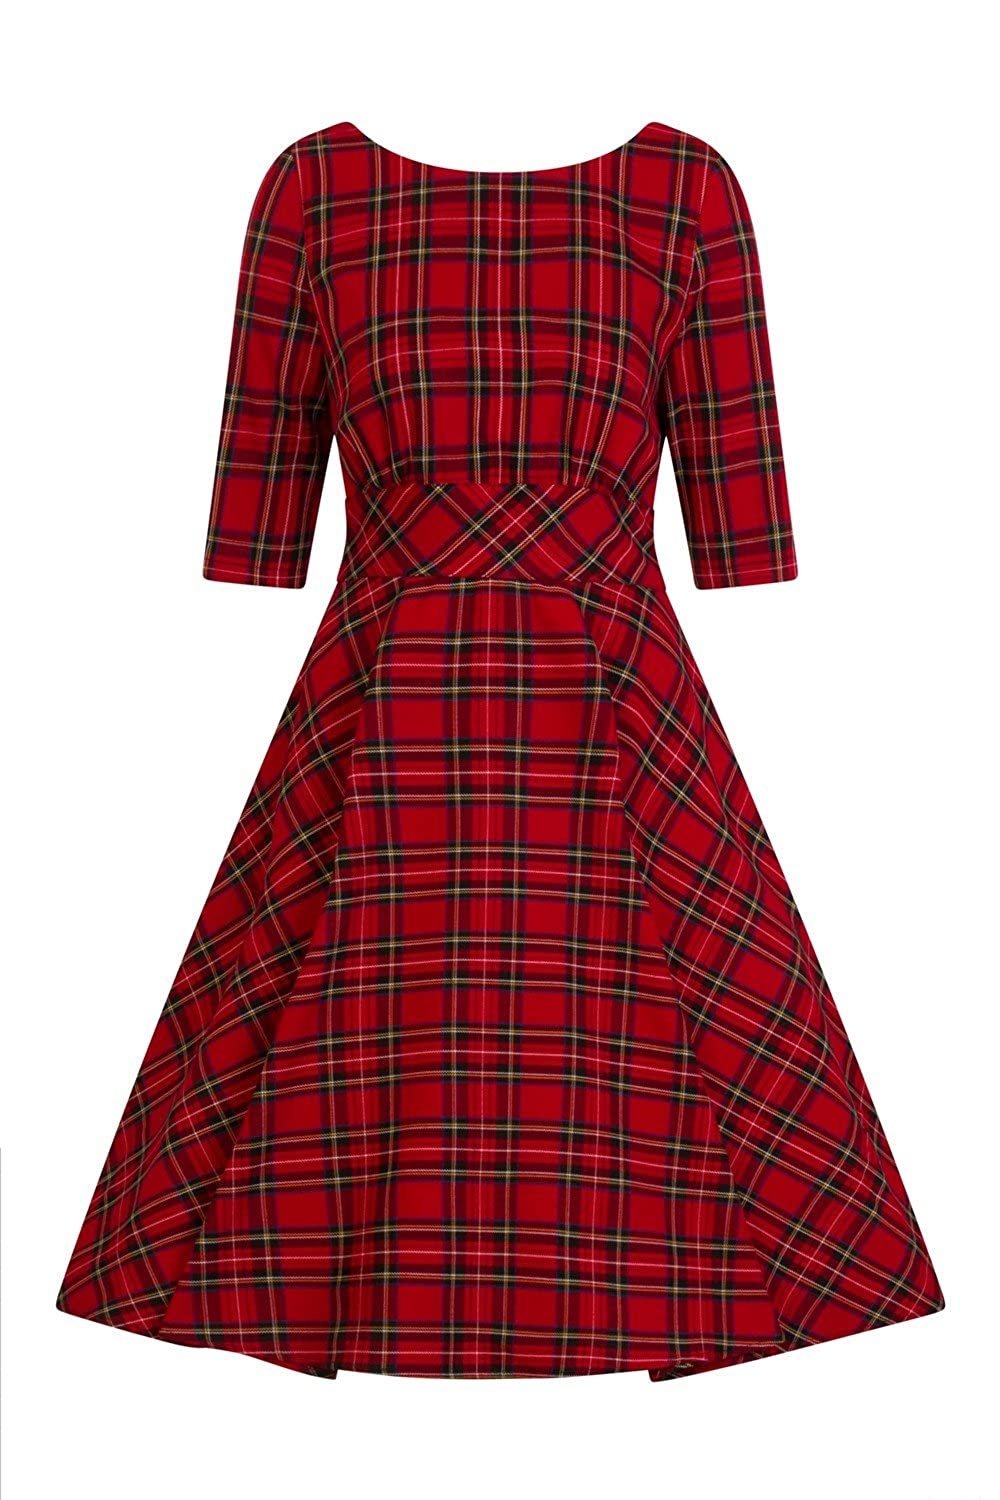 1940s Dresses | 40s Dress, Swing Dress Hell Bunny Irvine Tartan 1950s Vintage Retro Dress XS-4XL $72.99 AT vintagedancer.com